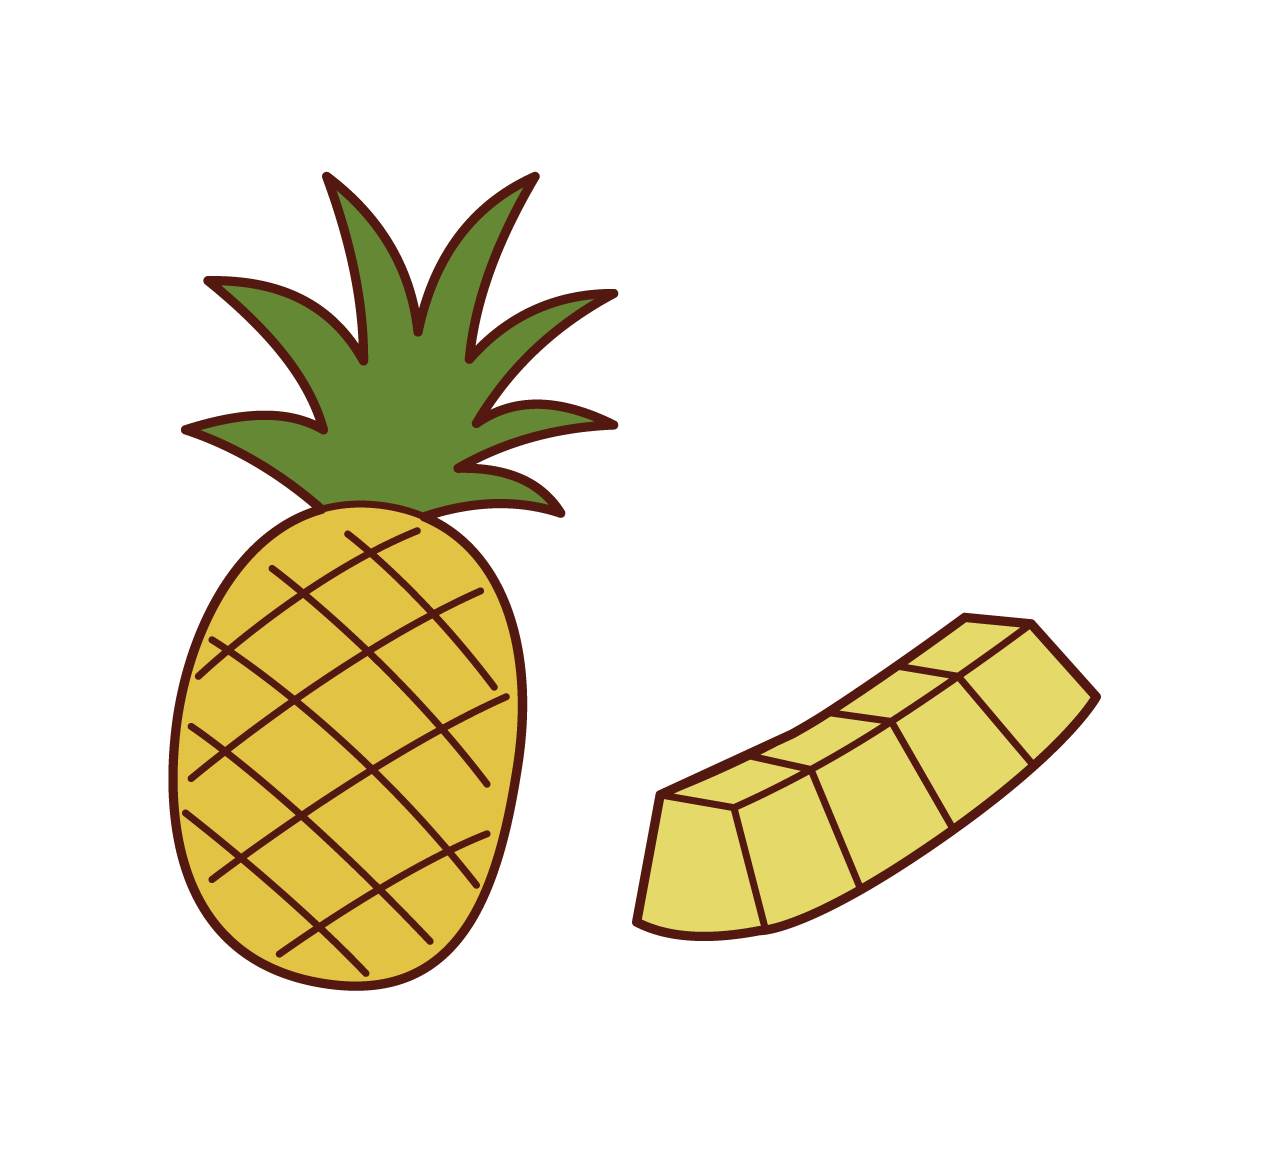 Pineapple Illustrations